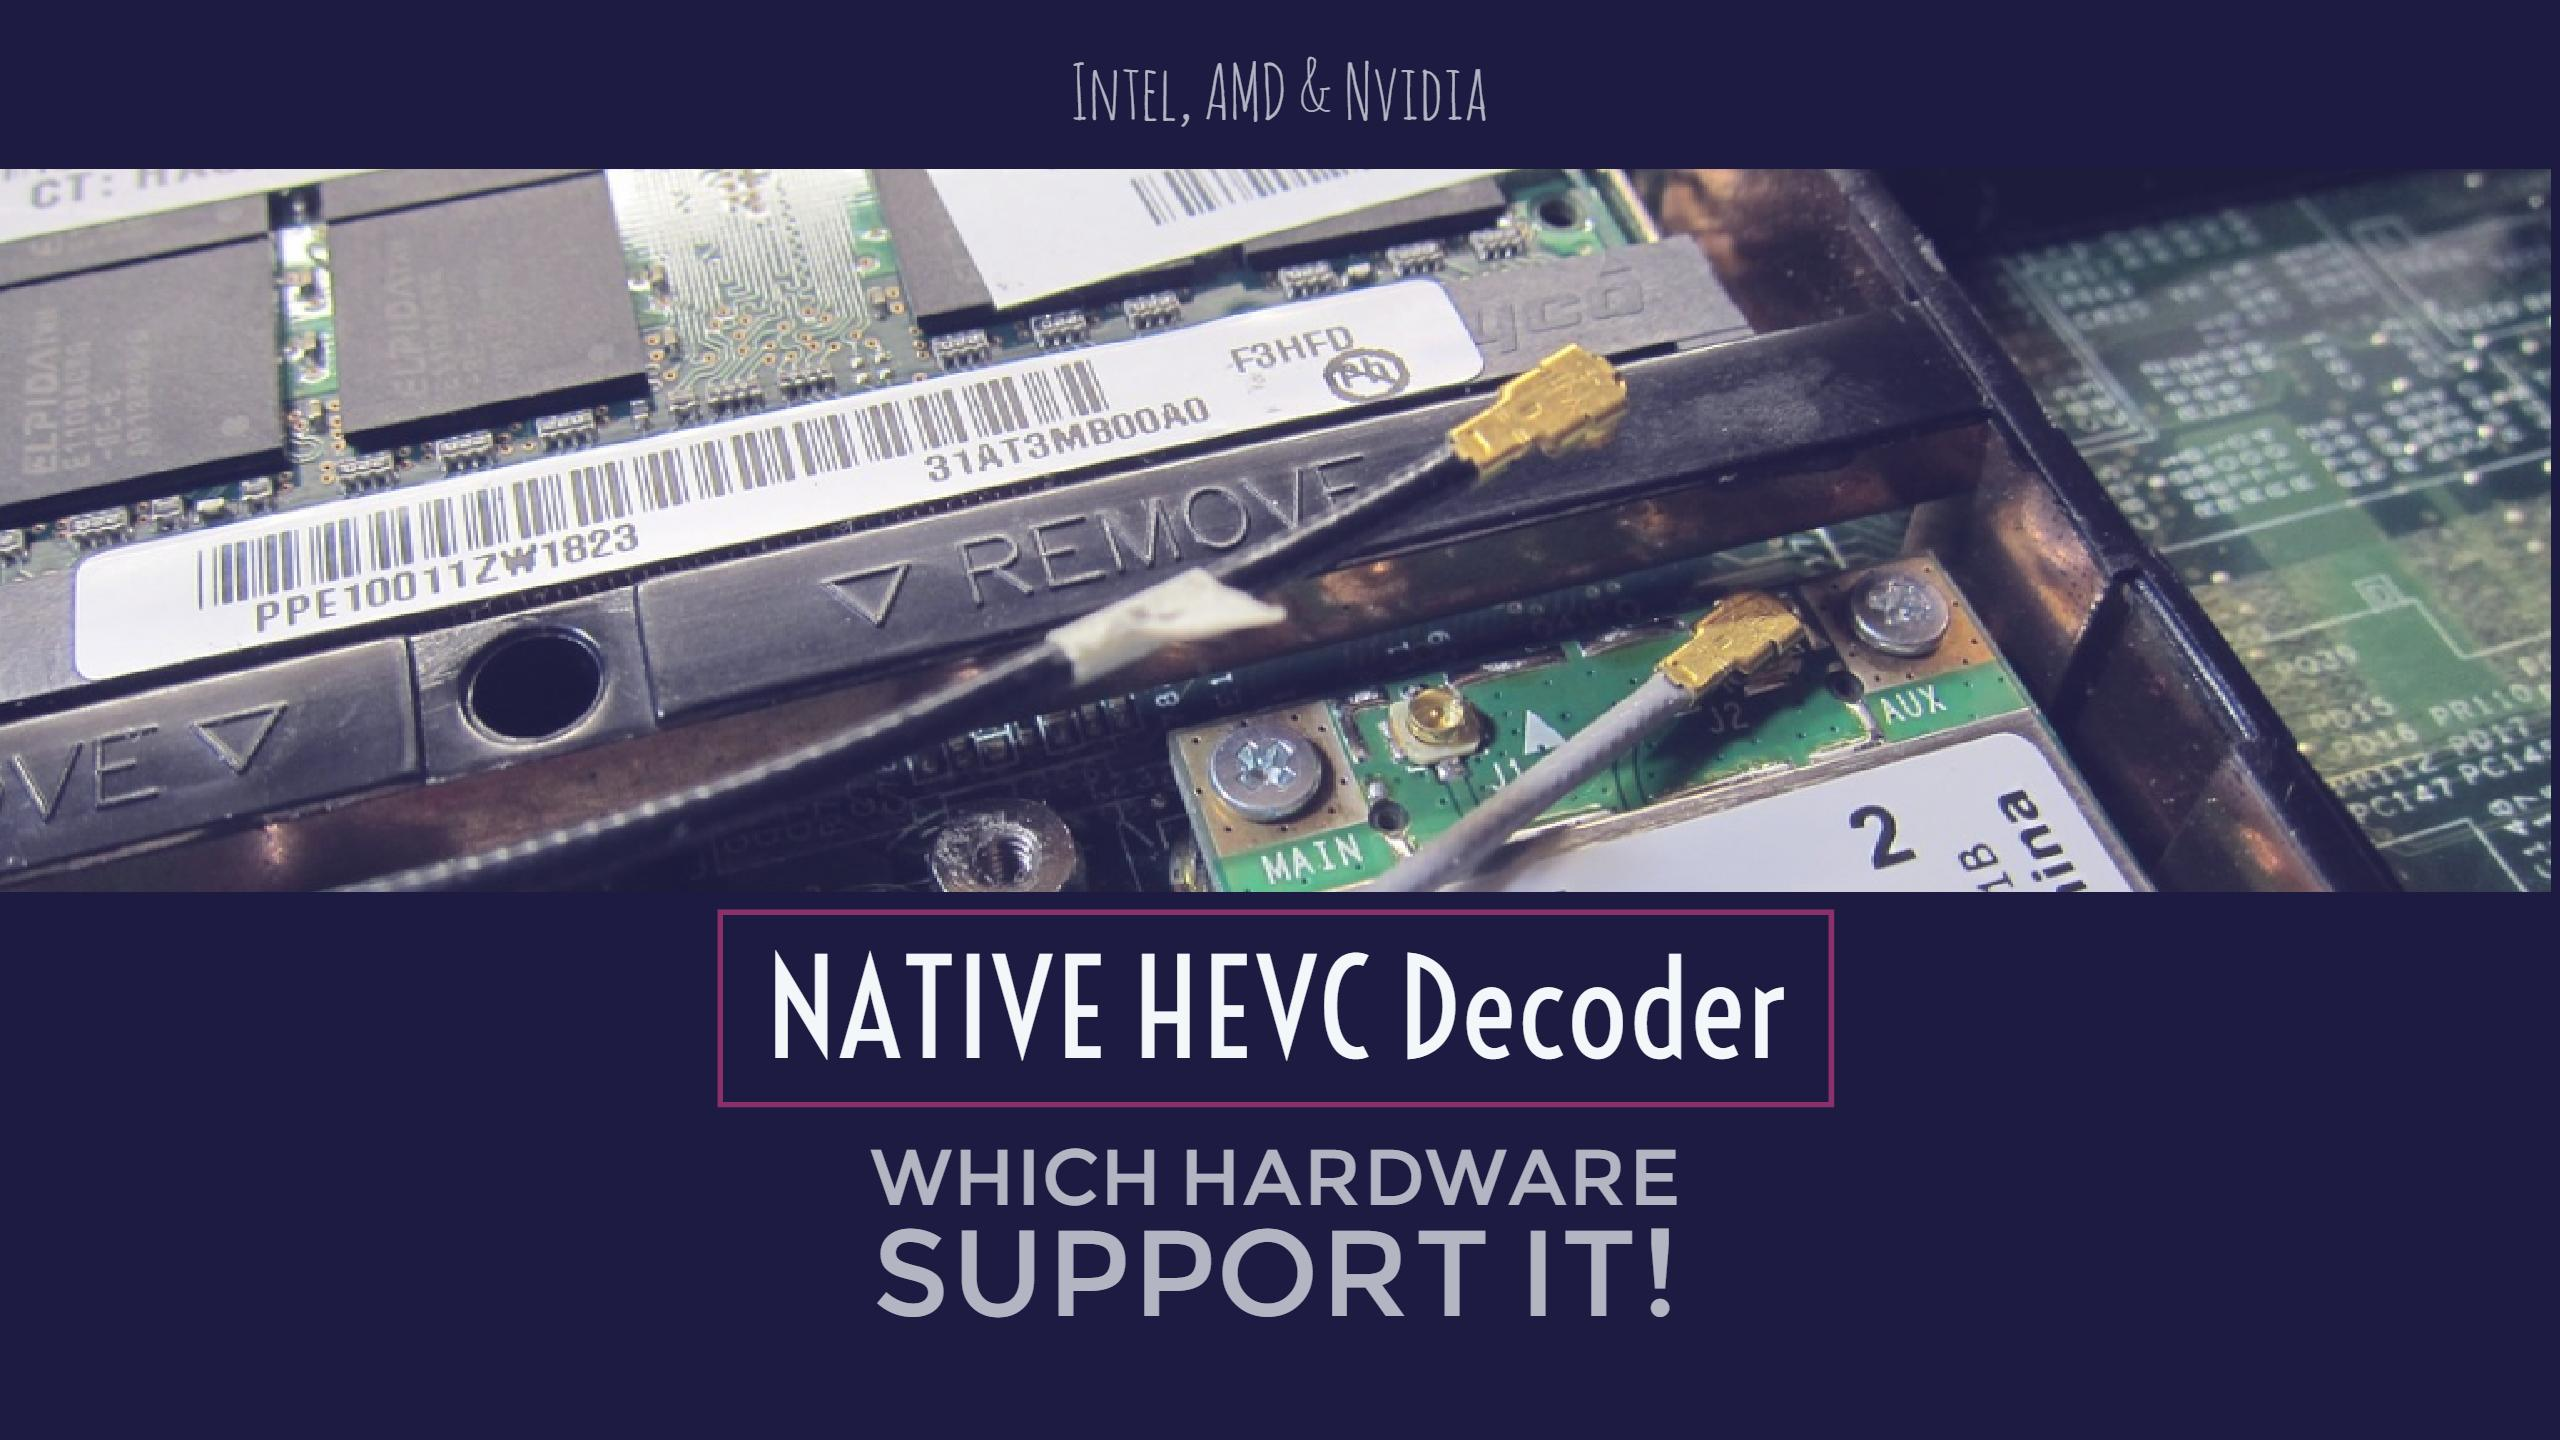 Intel & AMD CPUs and Nvidia GPUs That Support NATIVE HEVC Decoder